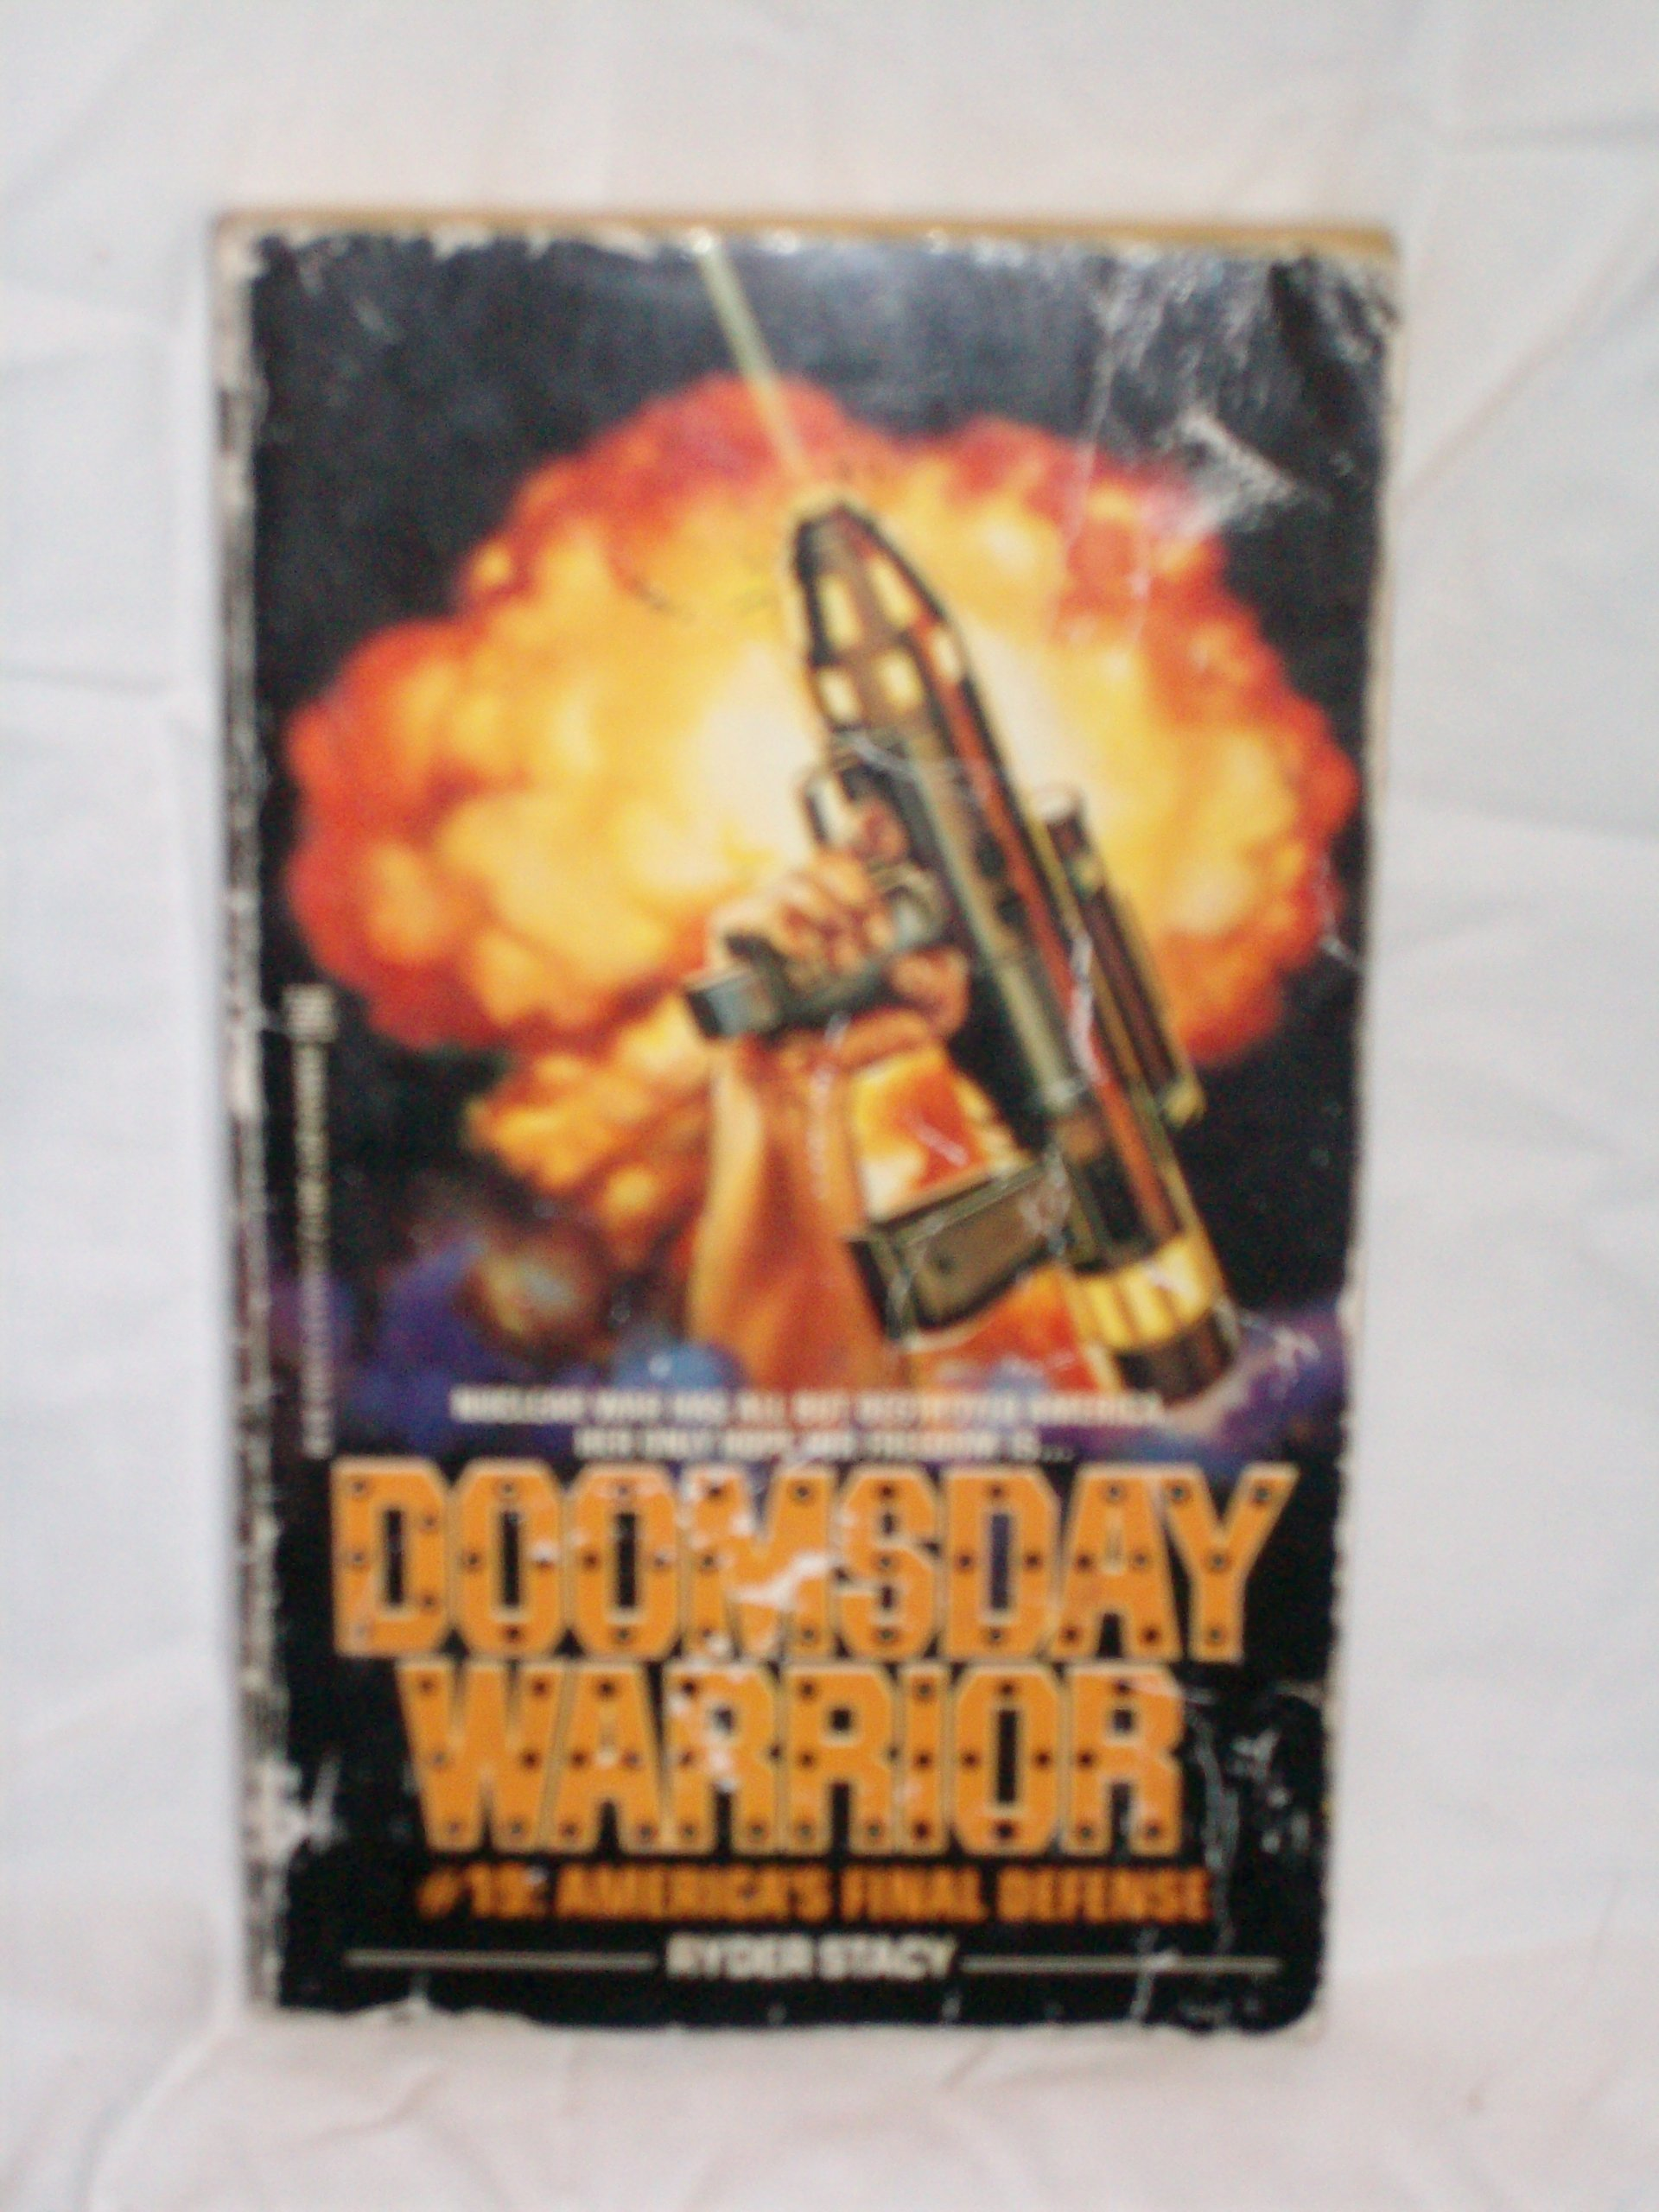 Buy America's Final Defense (Doomsday Warrior) Book Online at Low Prices in  India | America's Final Defense (Doomsday Warrior) Reviews & Ratings -  Amazon.in